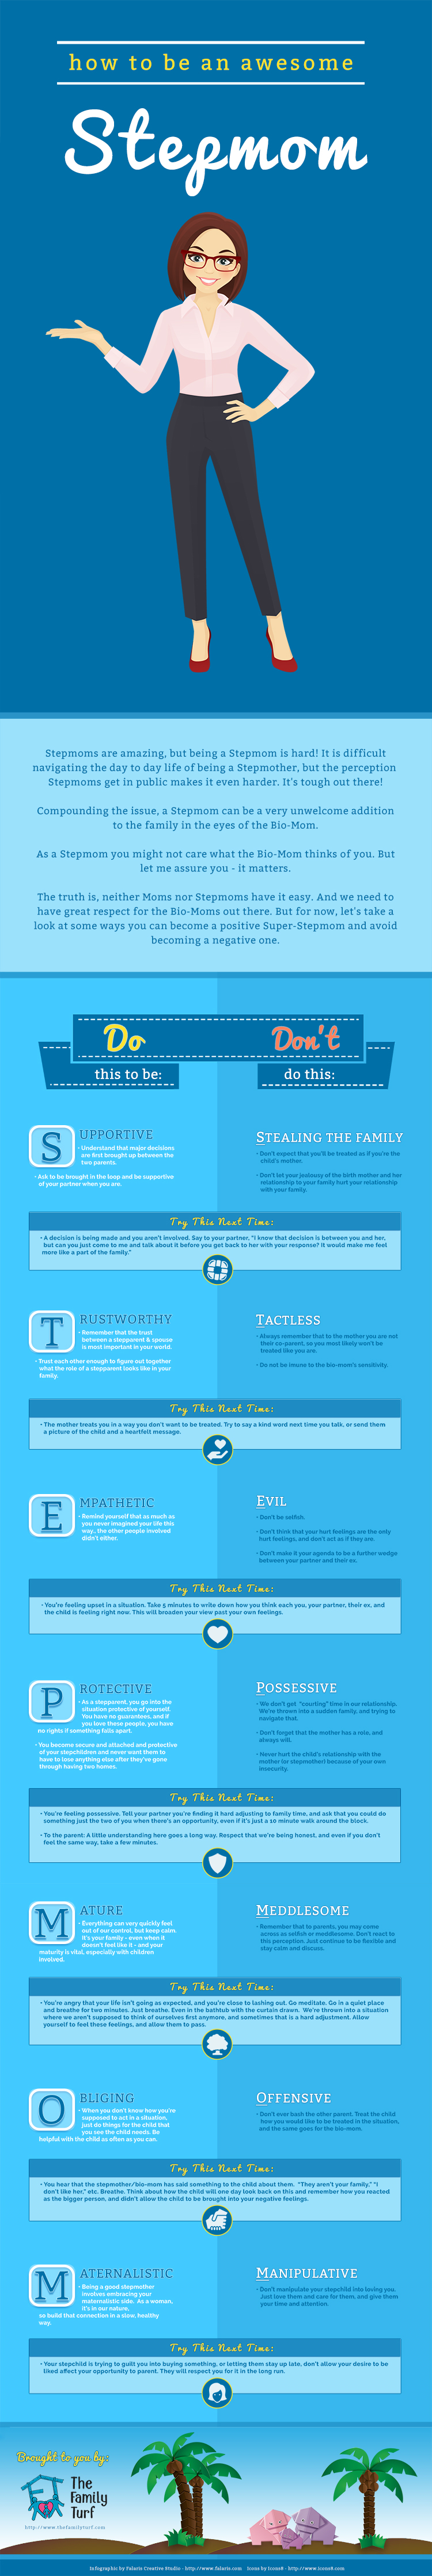 Being A Stepmom Is Hard Check Out This Awesome Infographic The